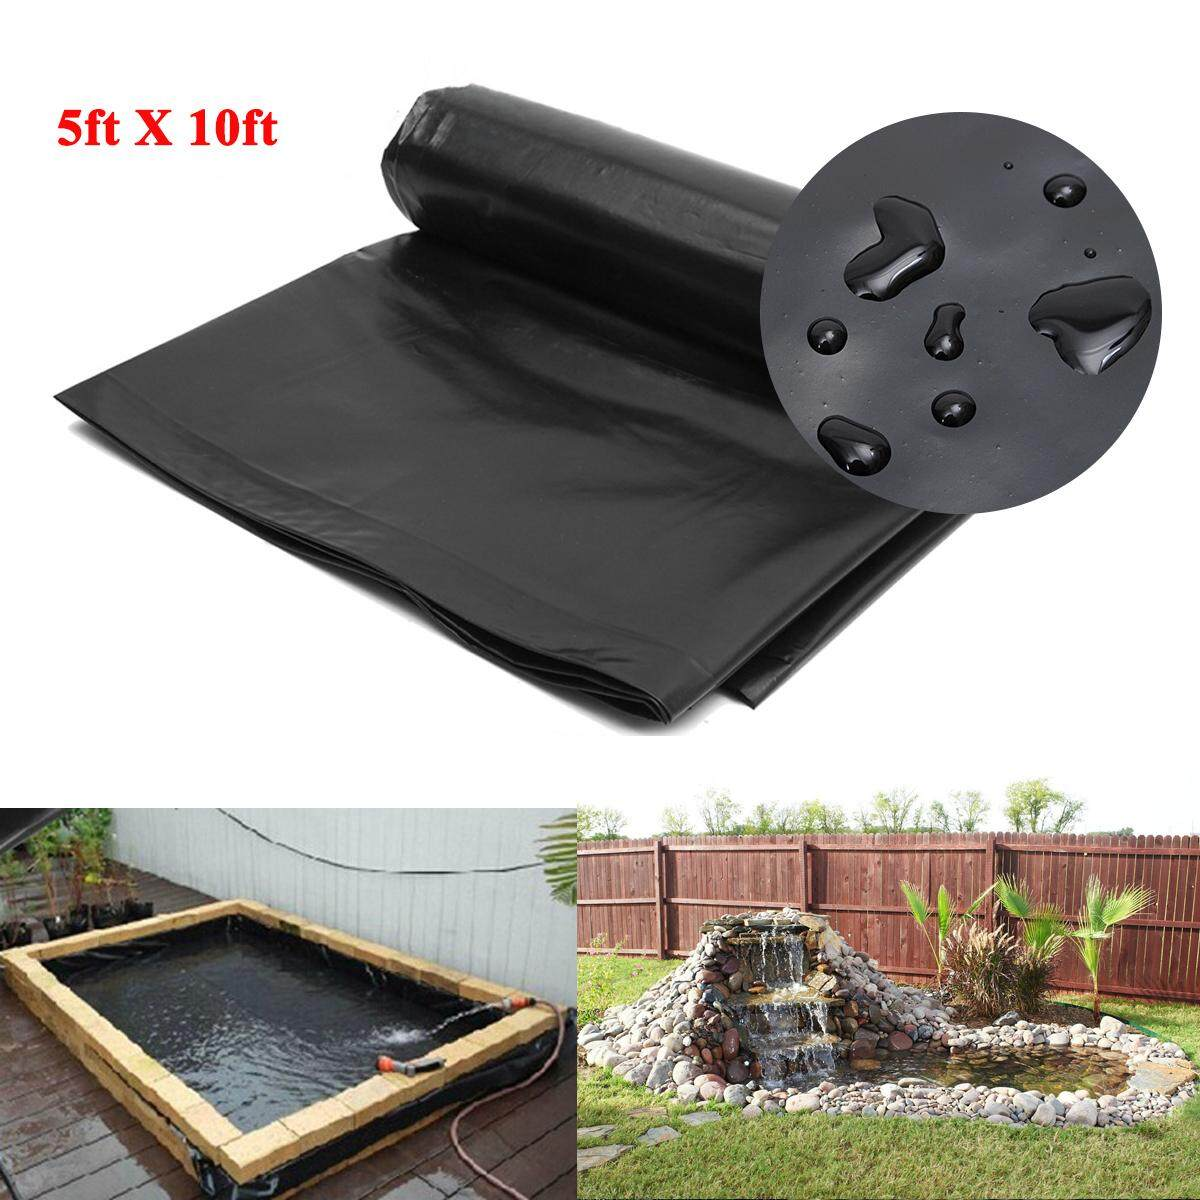 5'x10' HDPE Pond Liner Heavy Duty Landscaping Garden Pool Waterproof Liner  Cloth